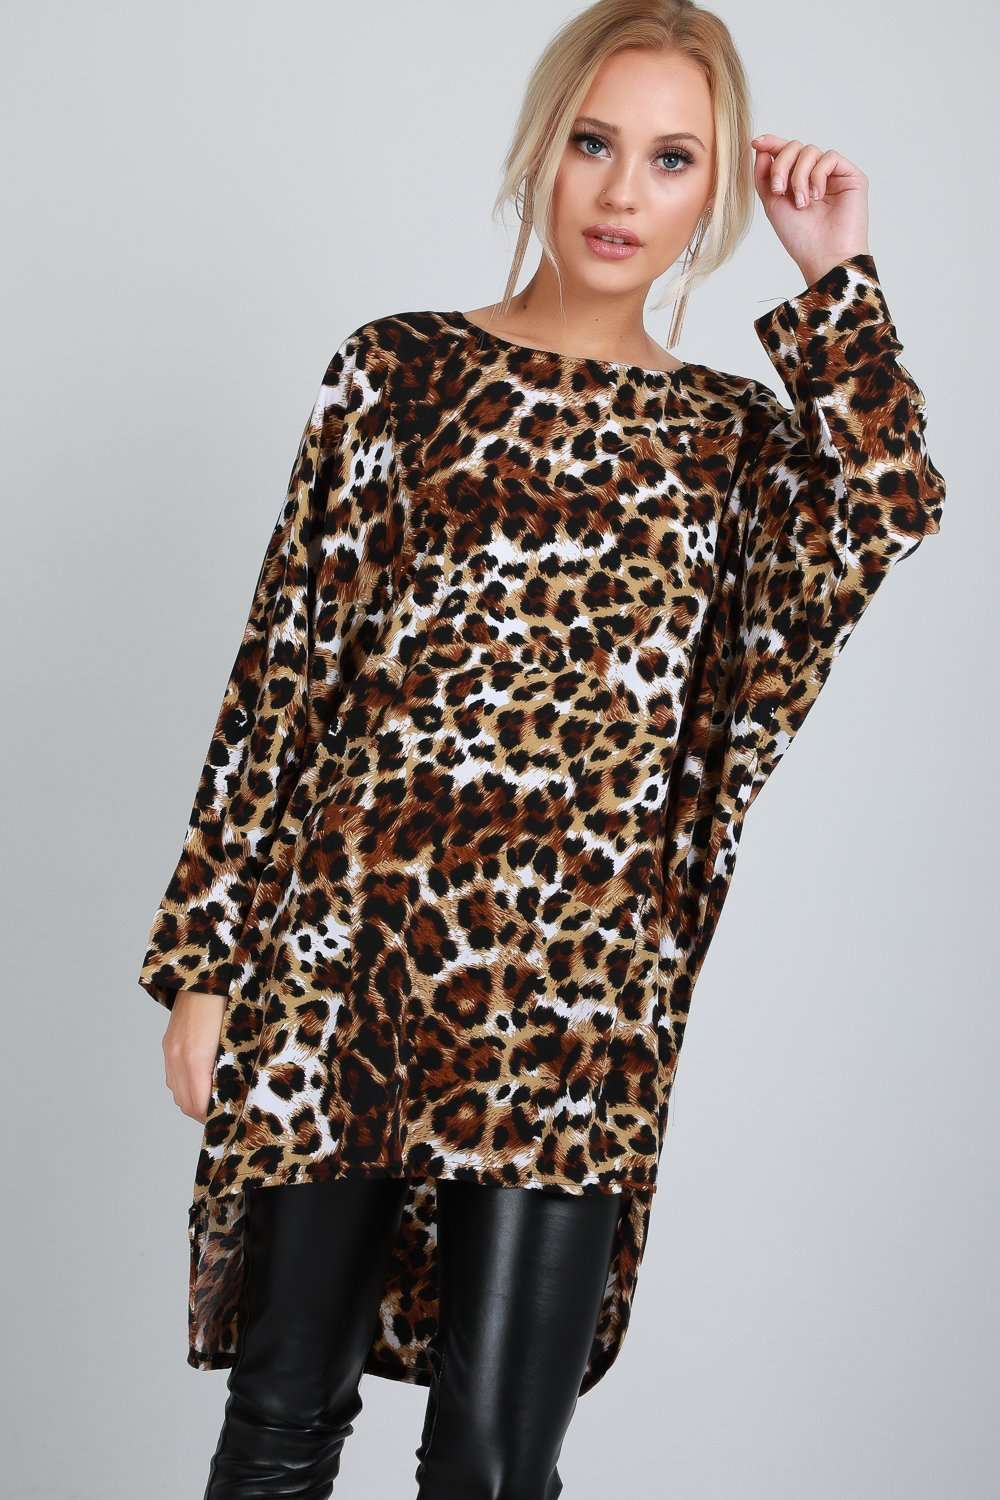 Sassie Leopard Print Long Sleeve Bat Wing Top - bejealous-com